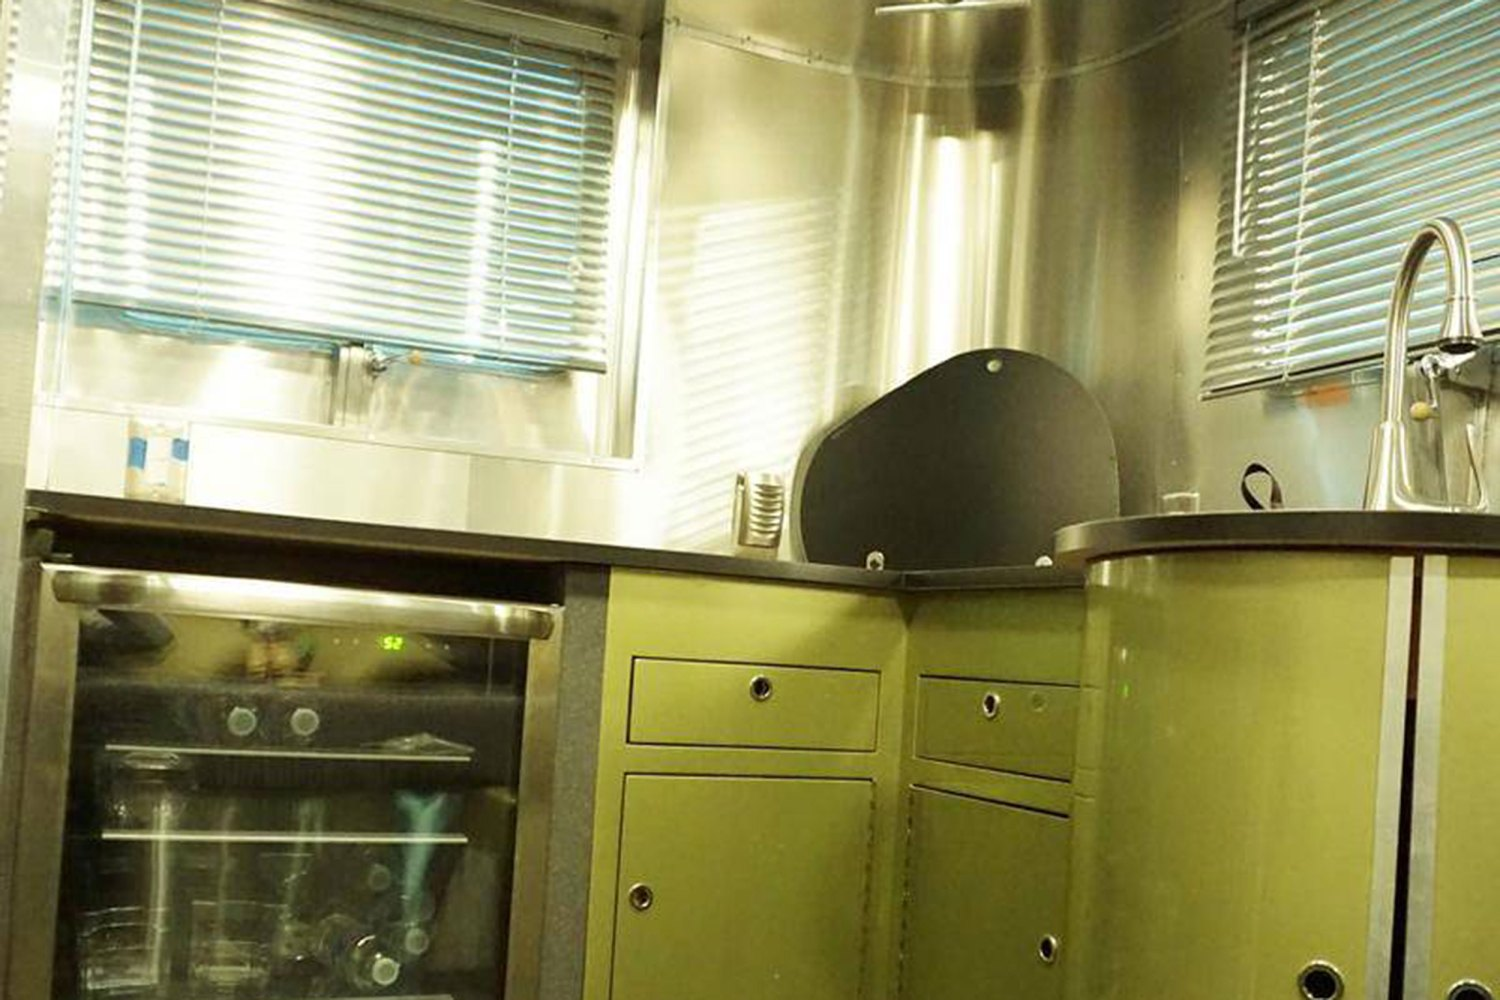 1952 Chevrolet Suburban trailer kitchen